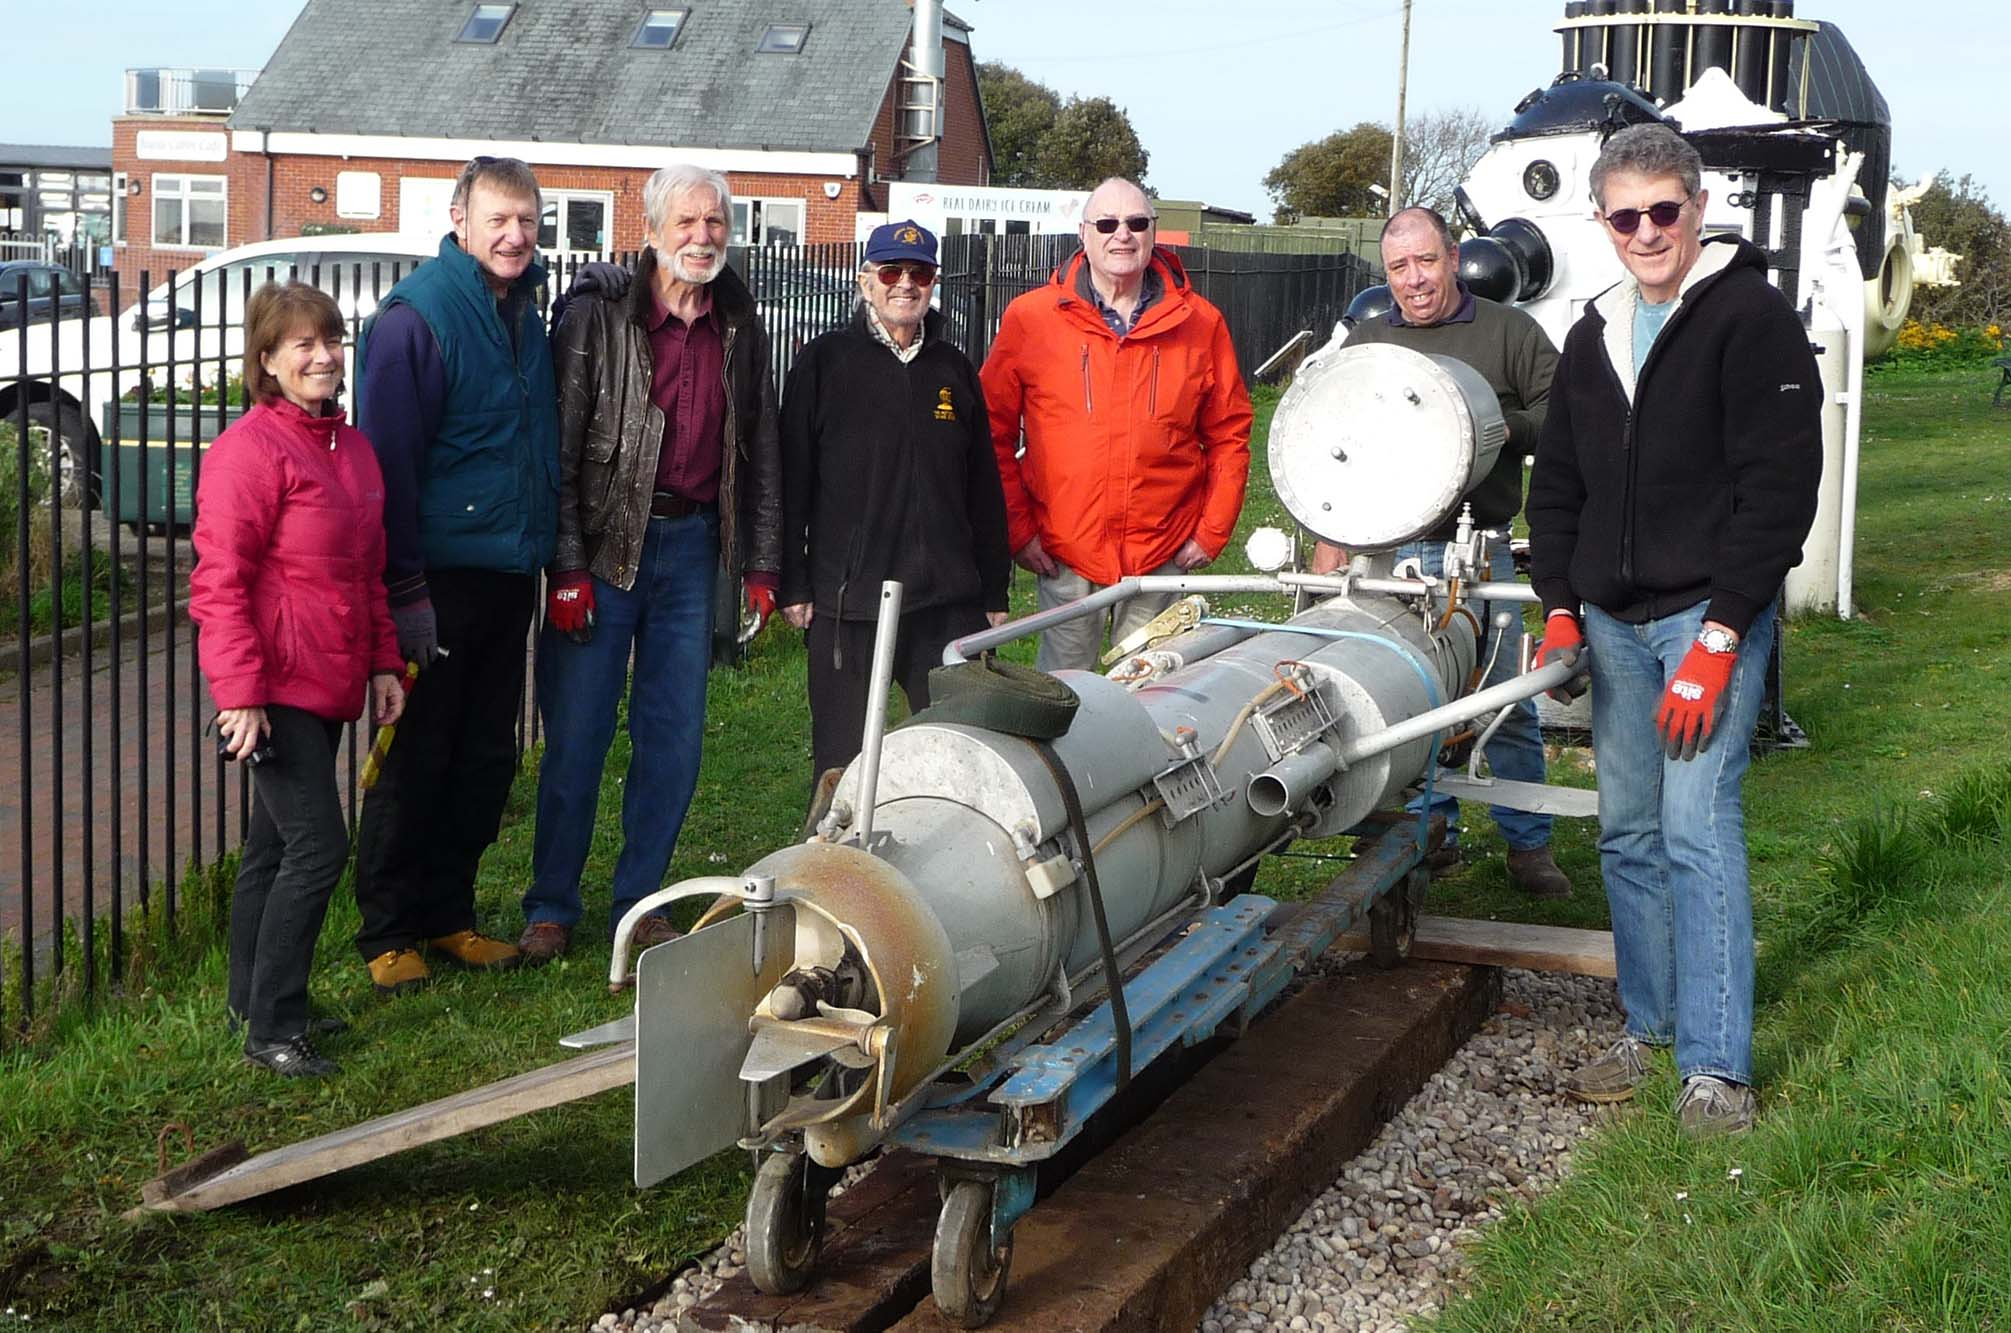 Group of seven museum volunteers standing behind the torpedo-shaped swimmer delivery vehicle in the outside exhibit area of the museum.